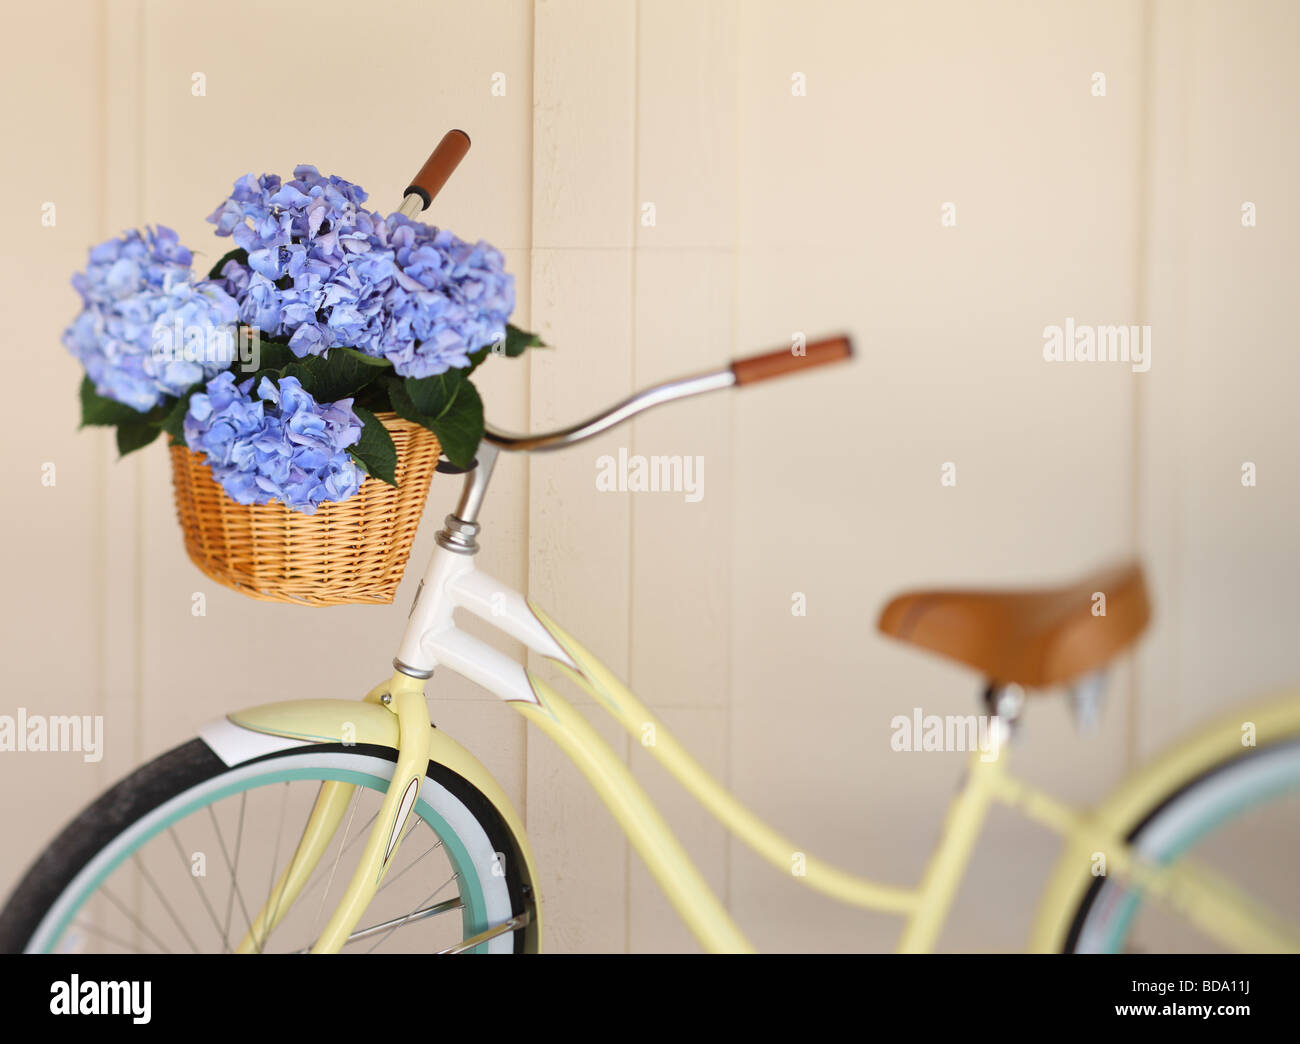 Bicycle with flowers in basket - Stock Image